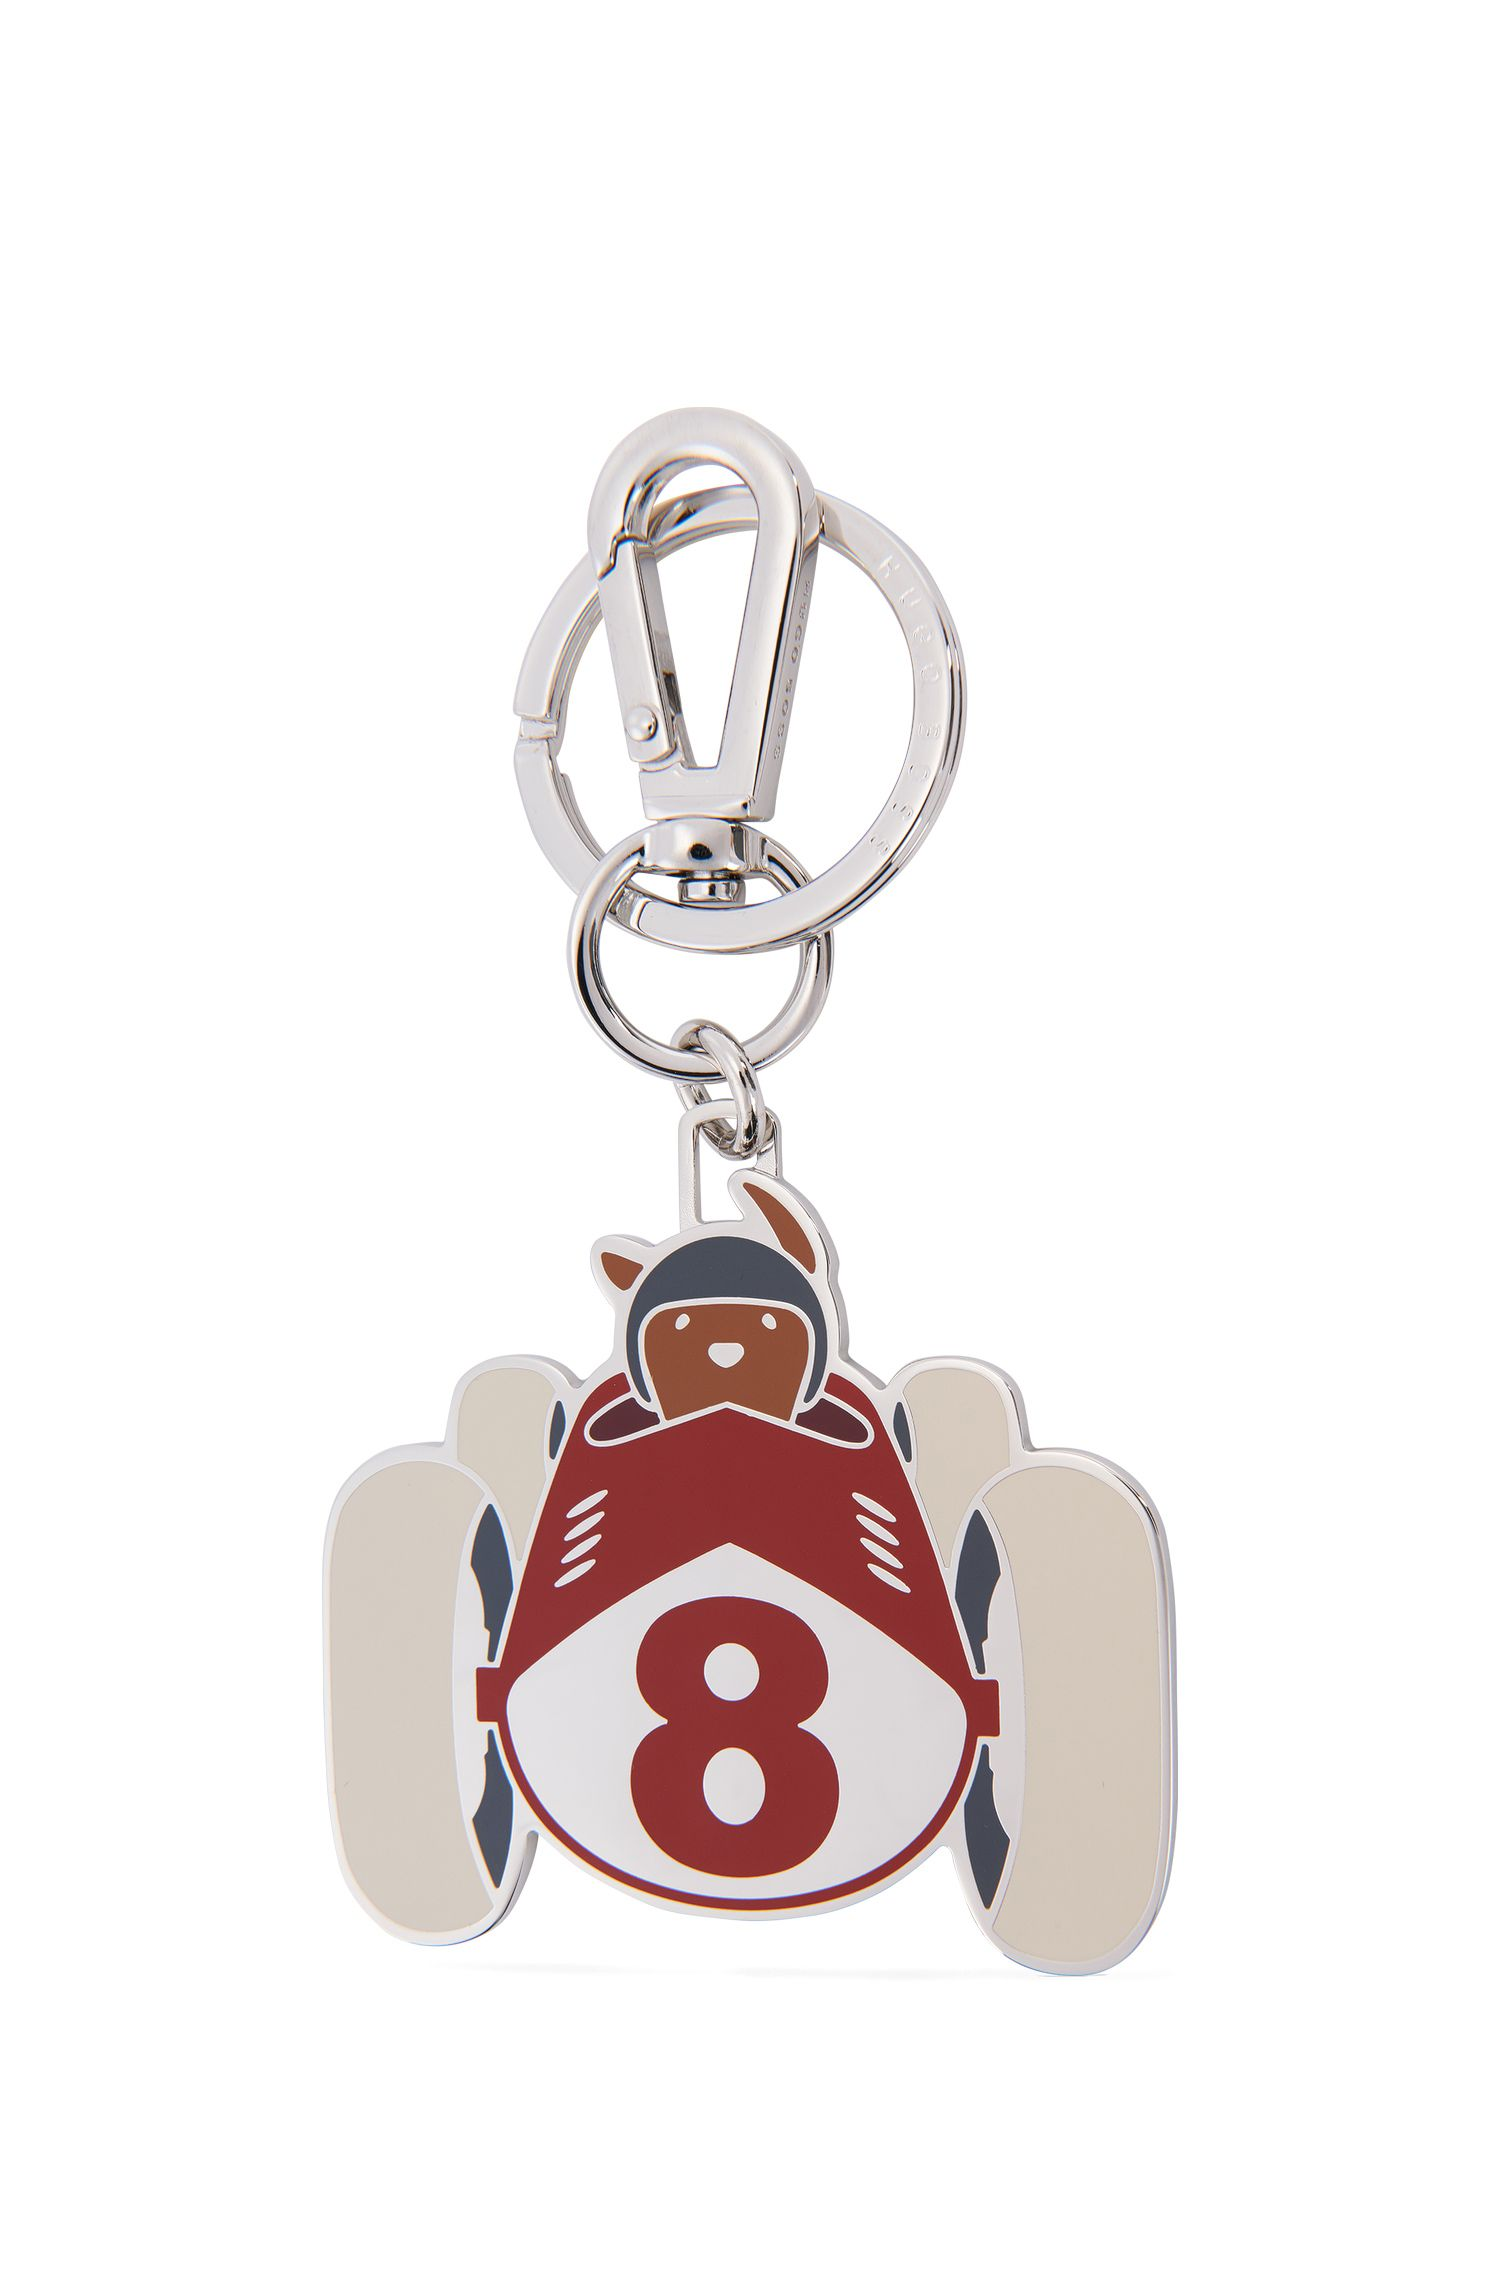 Roadster Key Fob | HB Road Key Fob Dog